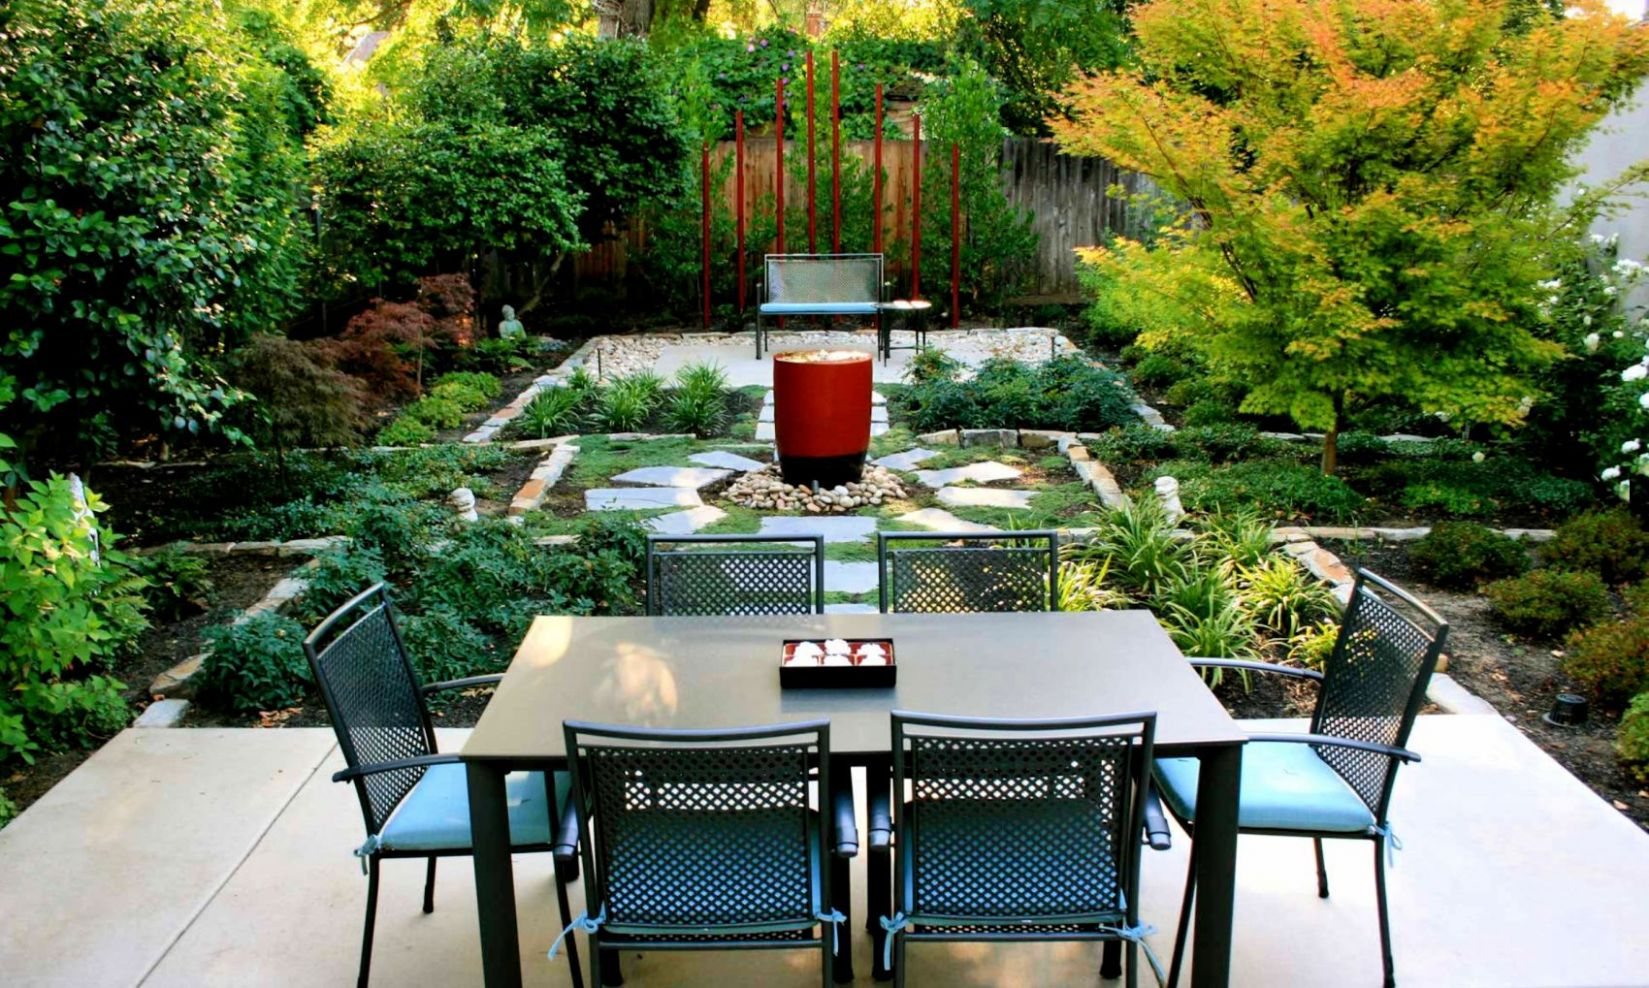 9 Landscaping Ideas for Small Backyards - backyard ideas images